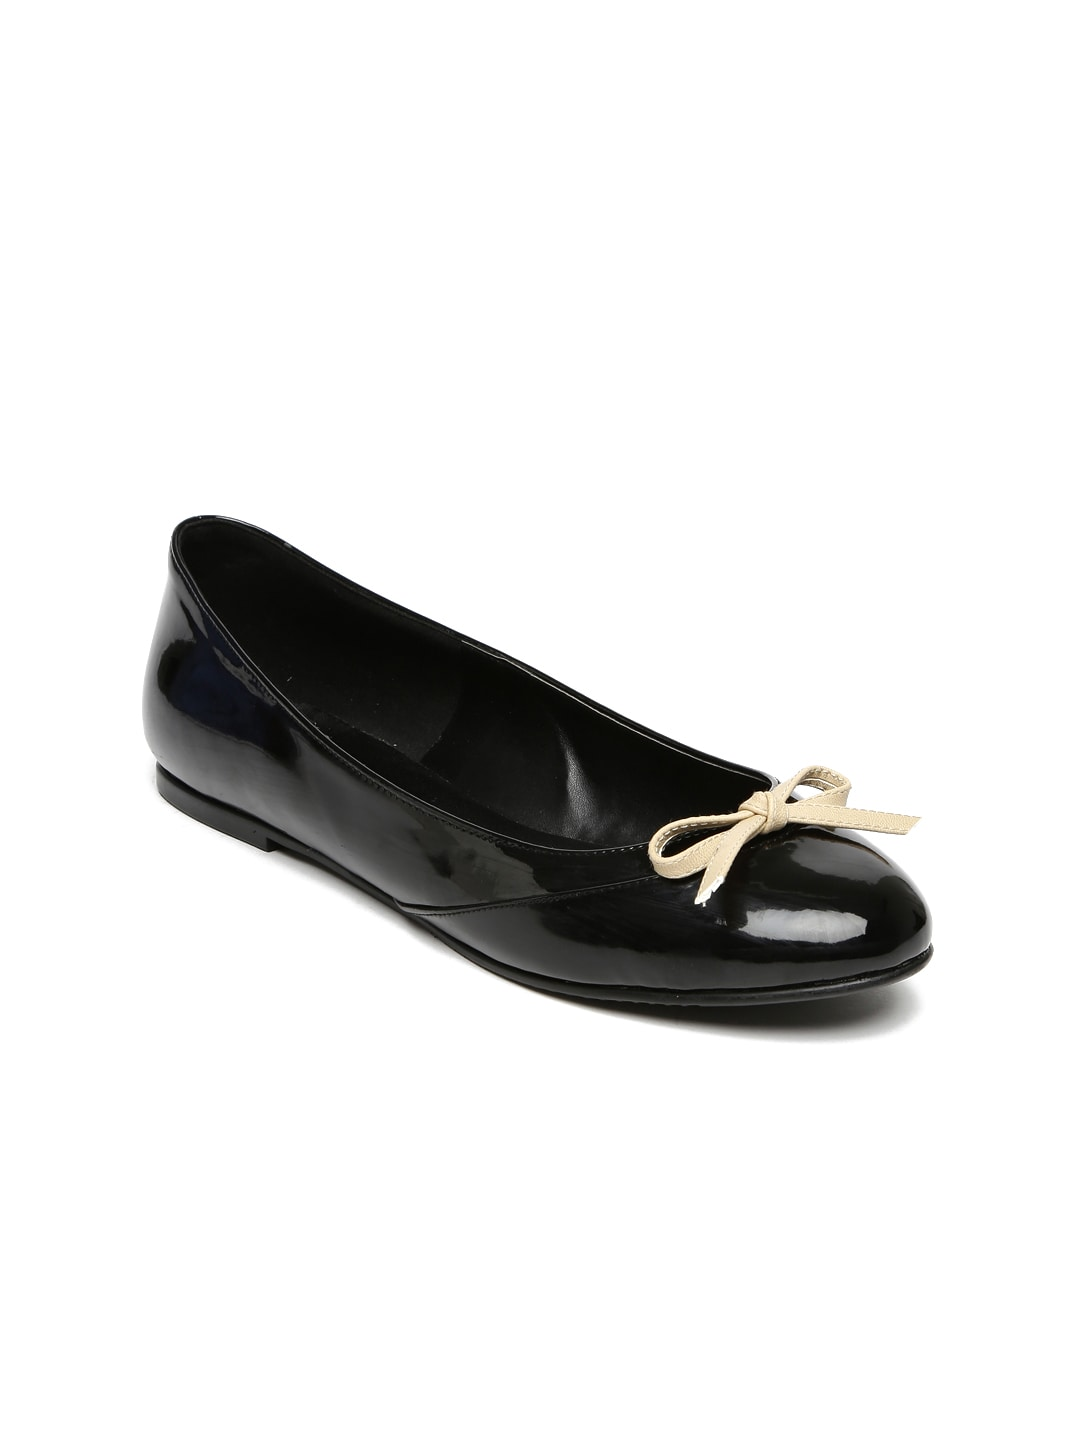 HEATWAVE Women Black Ballerinas